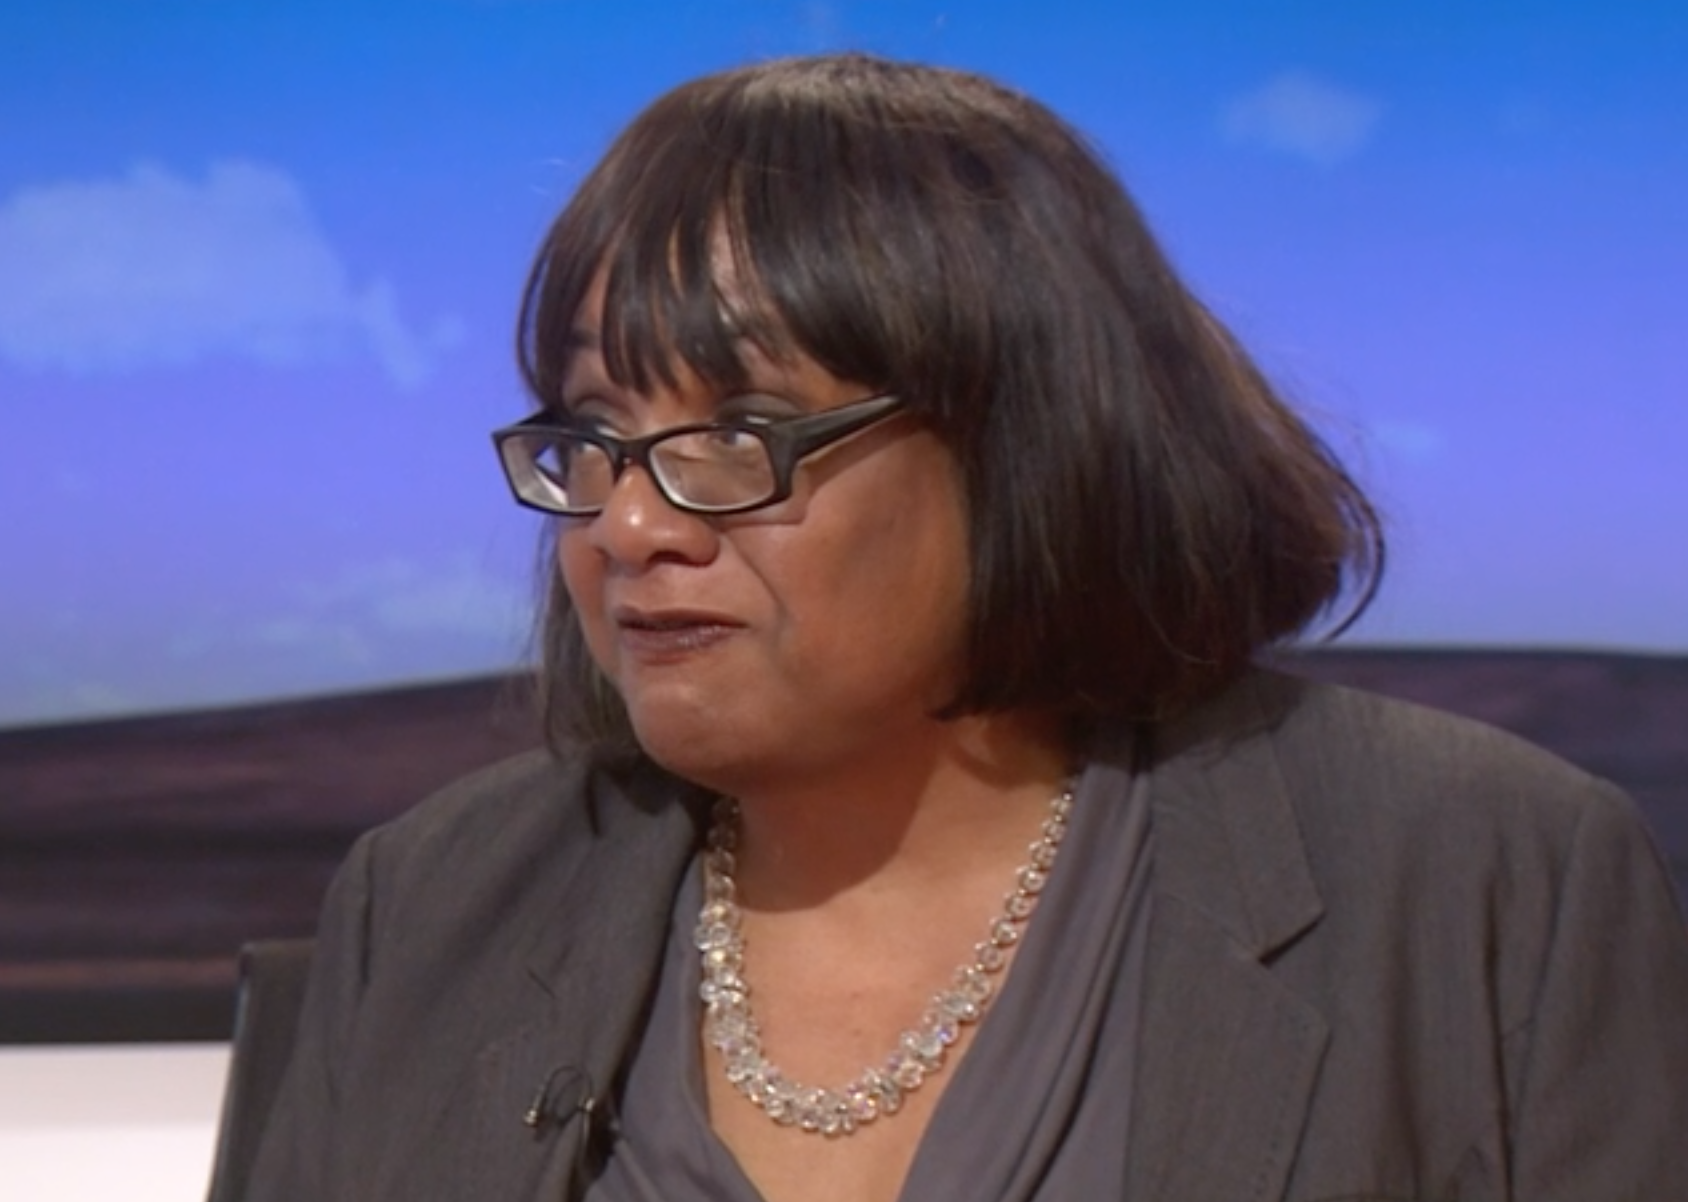 Diane Abbott has backed a second referendum (Image: Sky News)